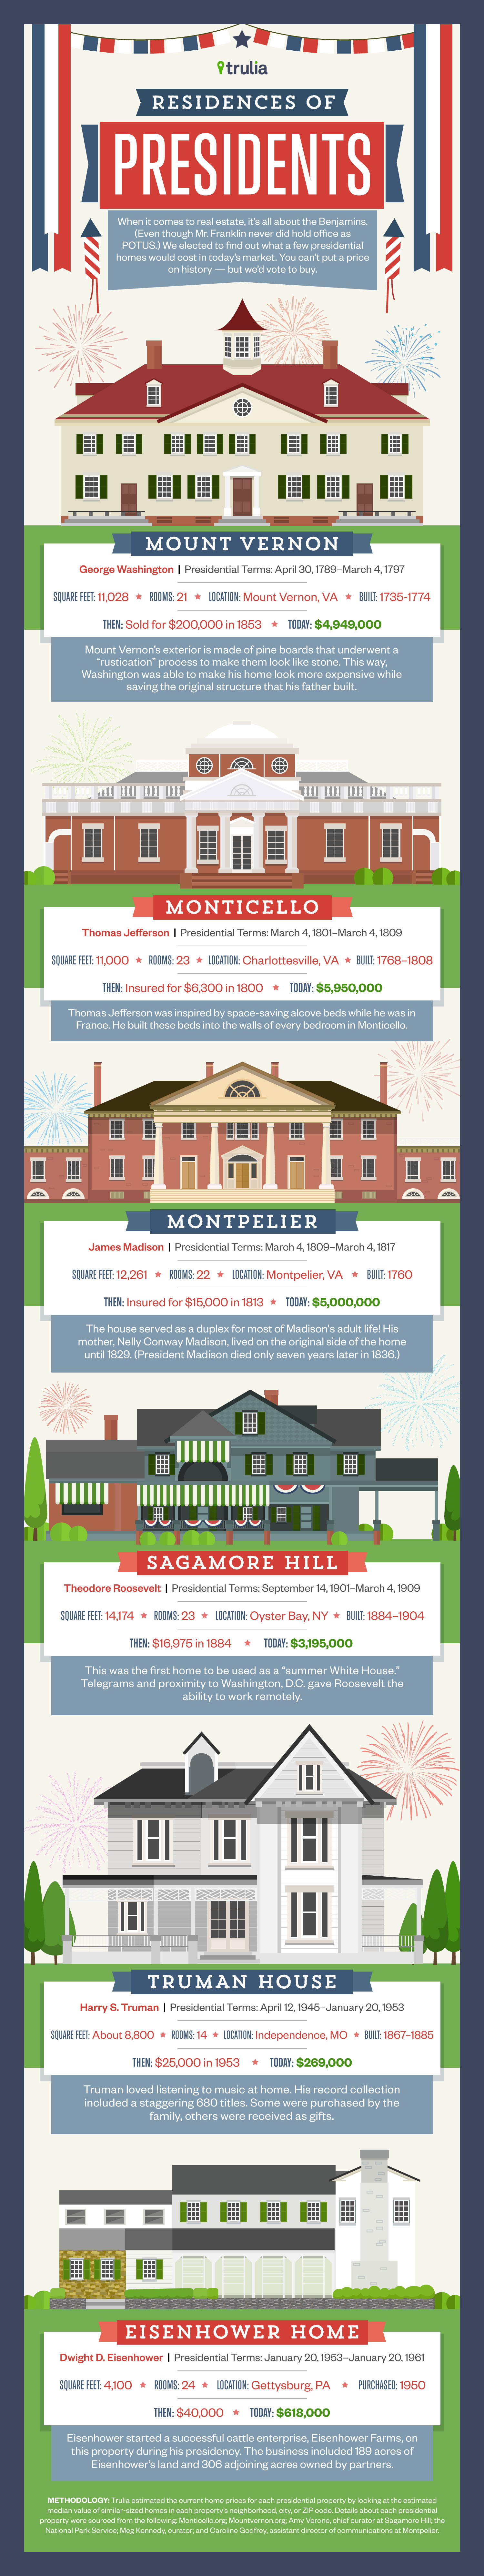 Presidents Day Infographic